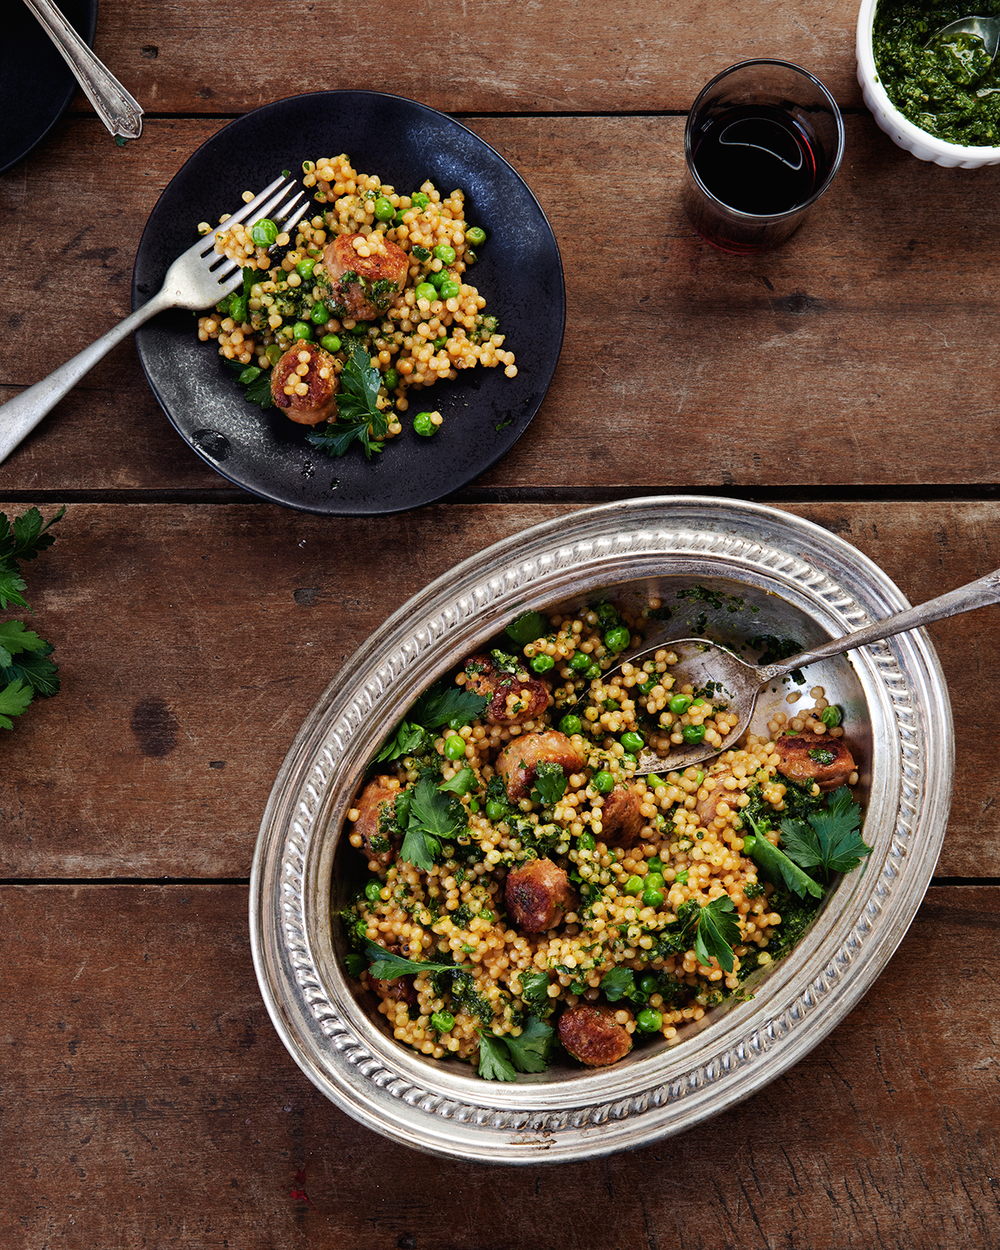 ABHSS_Israeli-Couscous-Risotto-with-Sausage_Peas_Parsley-Pesto_0214.jpg